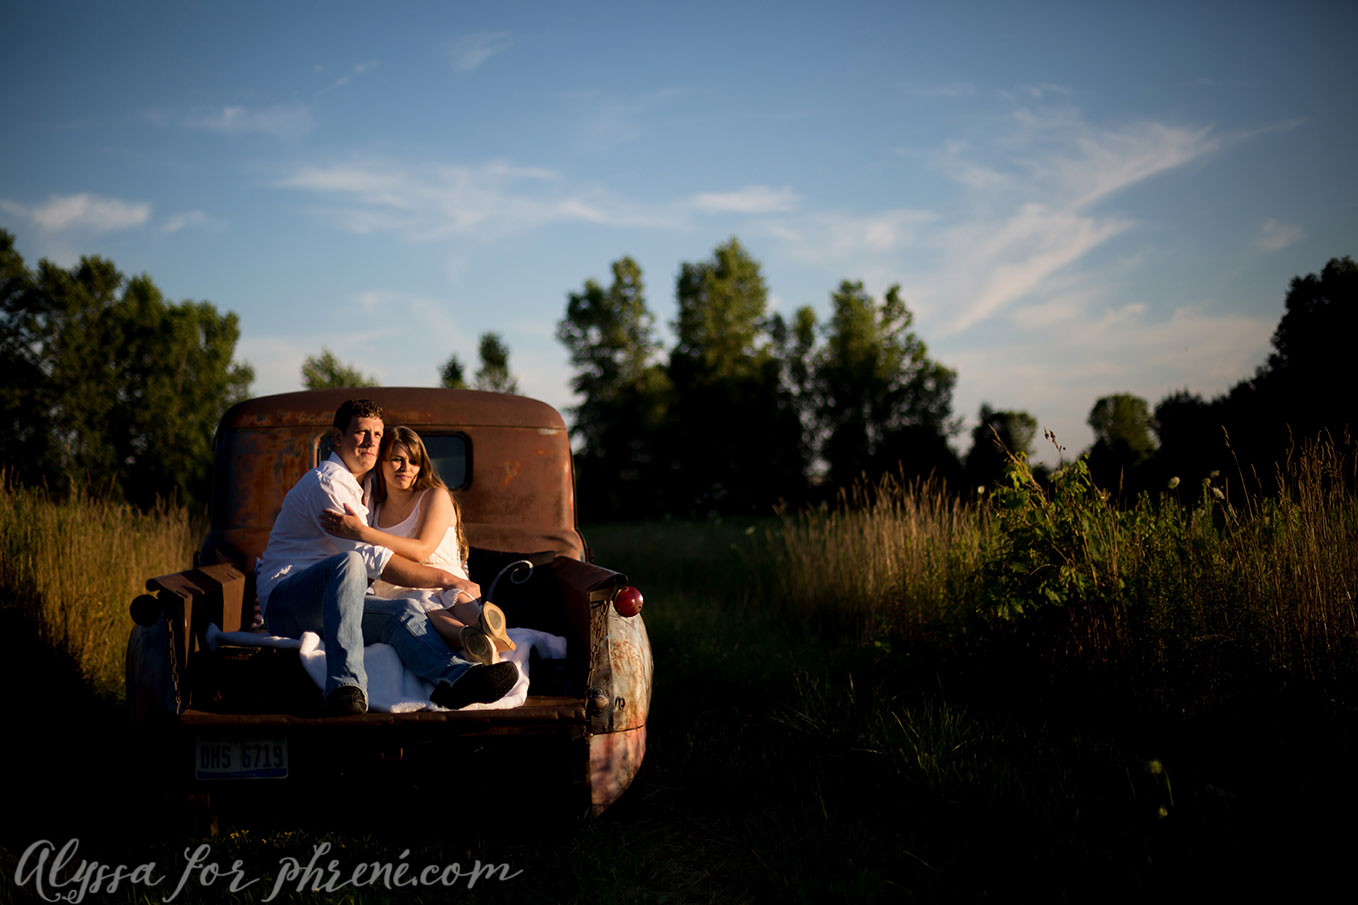 Grand_Rapids_Engagment_Photographer11.jpg